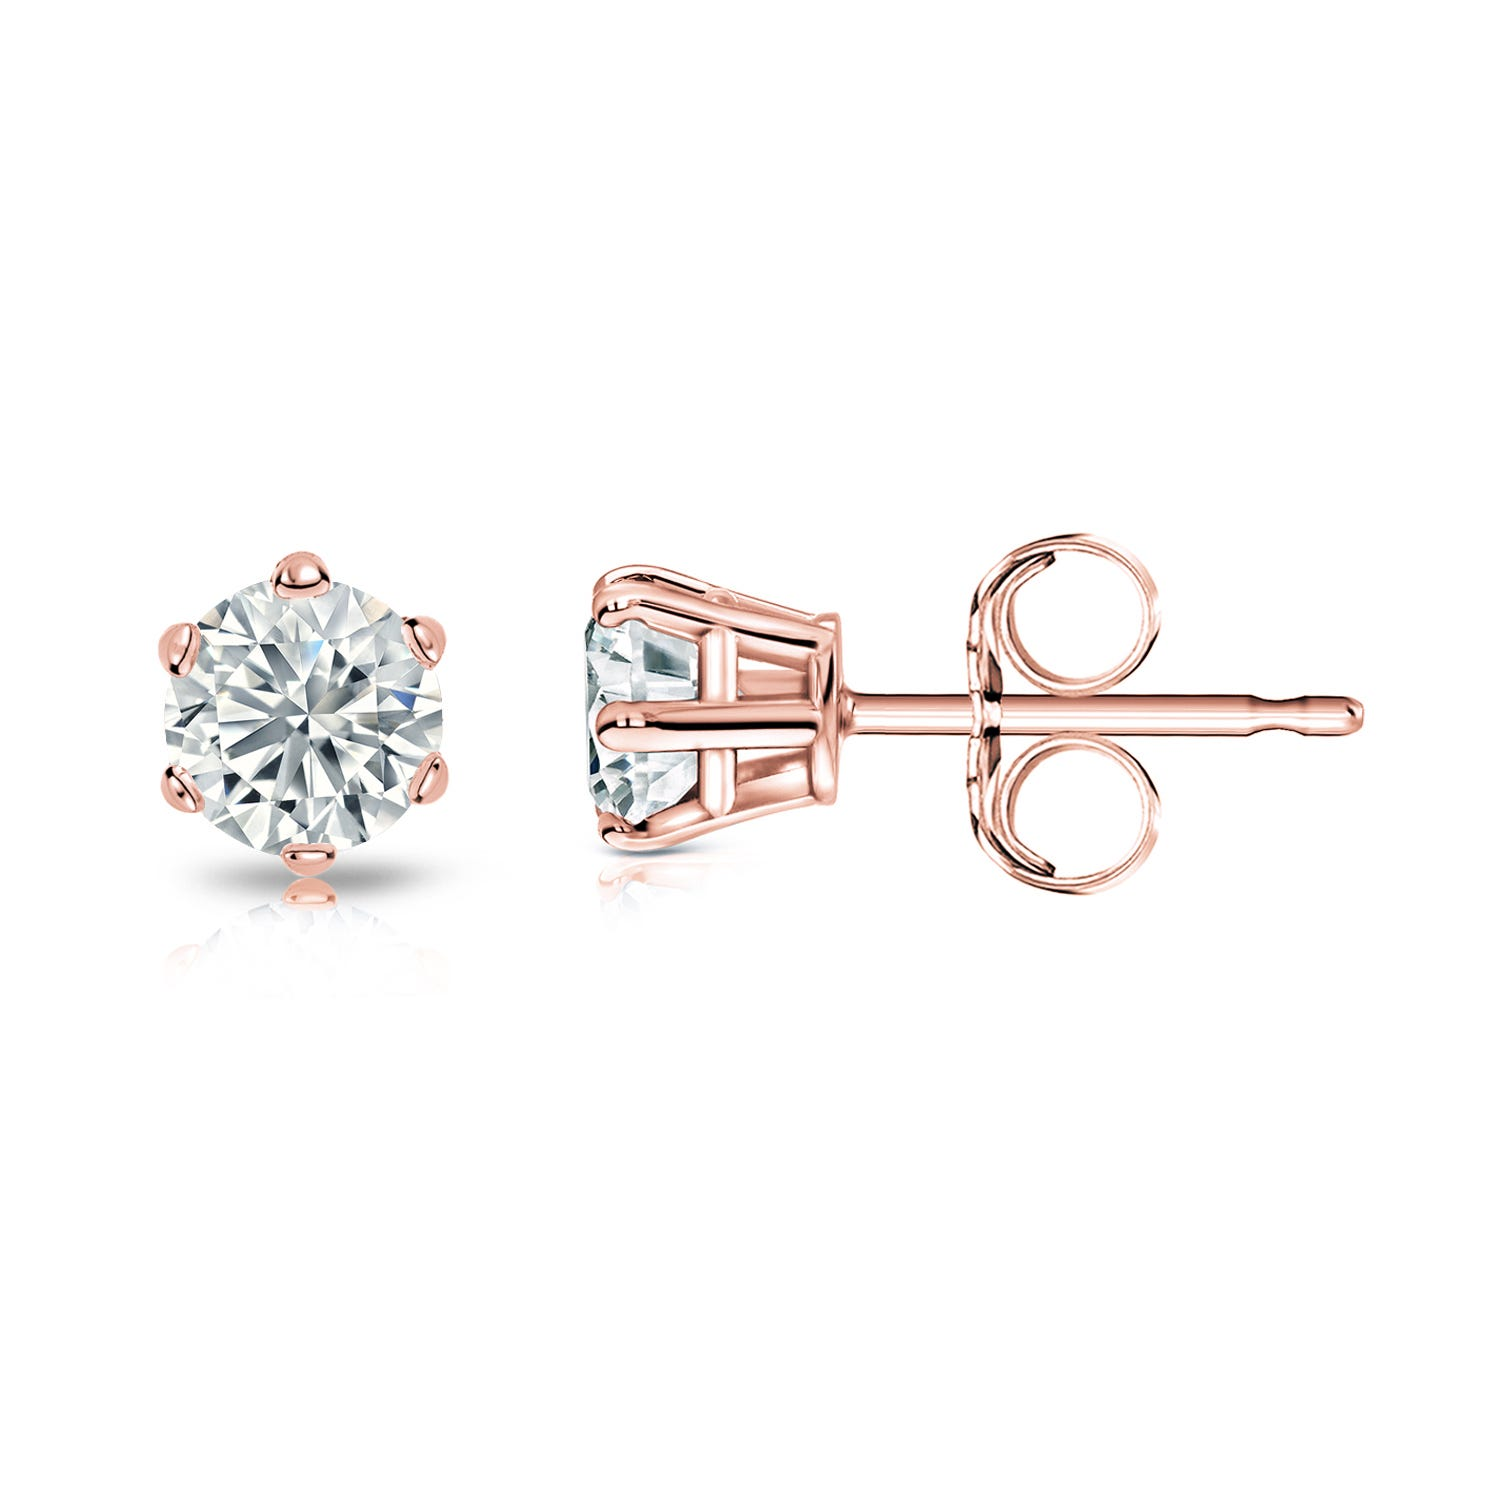 Round Diamond 1/3ctw. (IJ-I2) Solitaire Stud 6-Prong Earrings in 10K Rose Gold